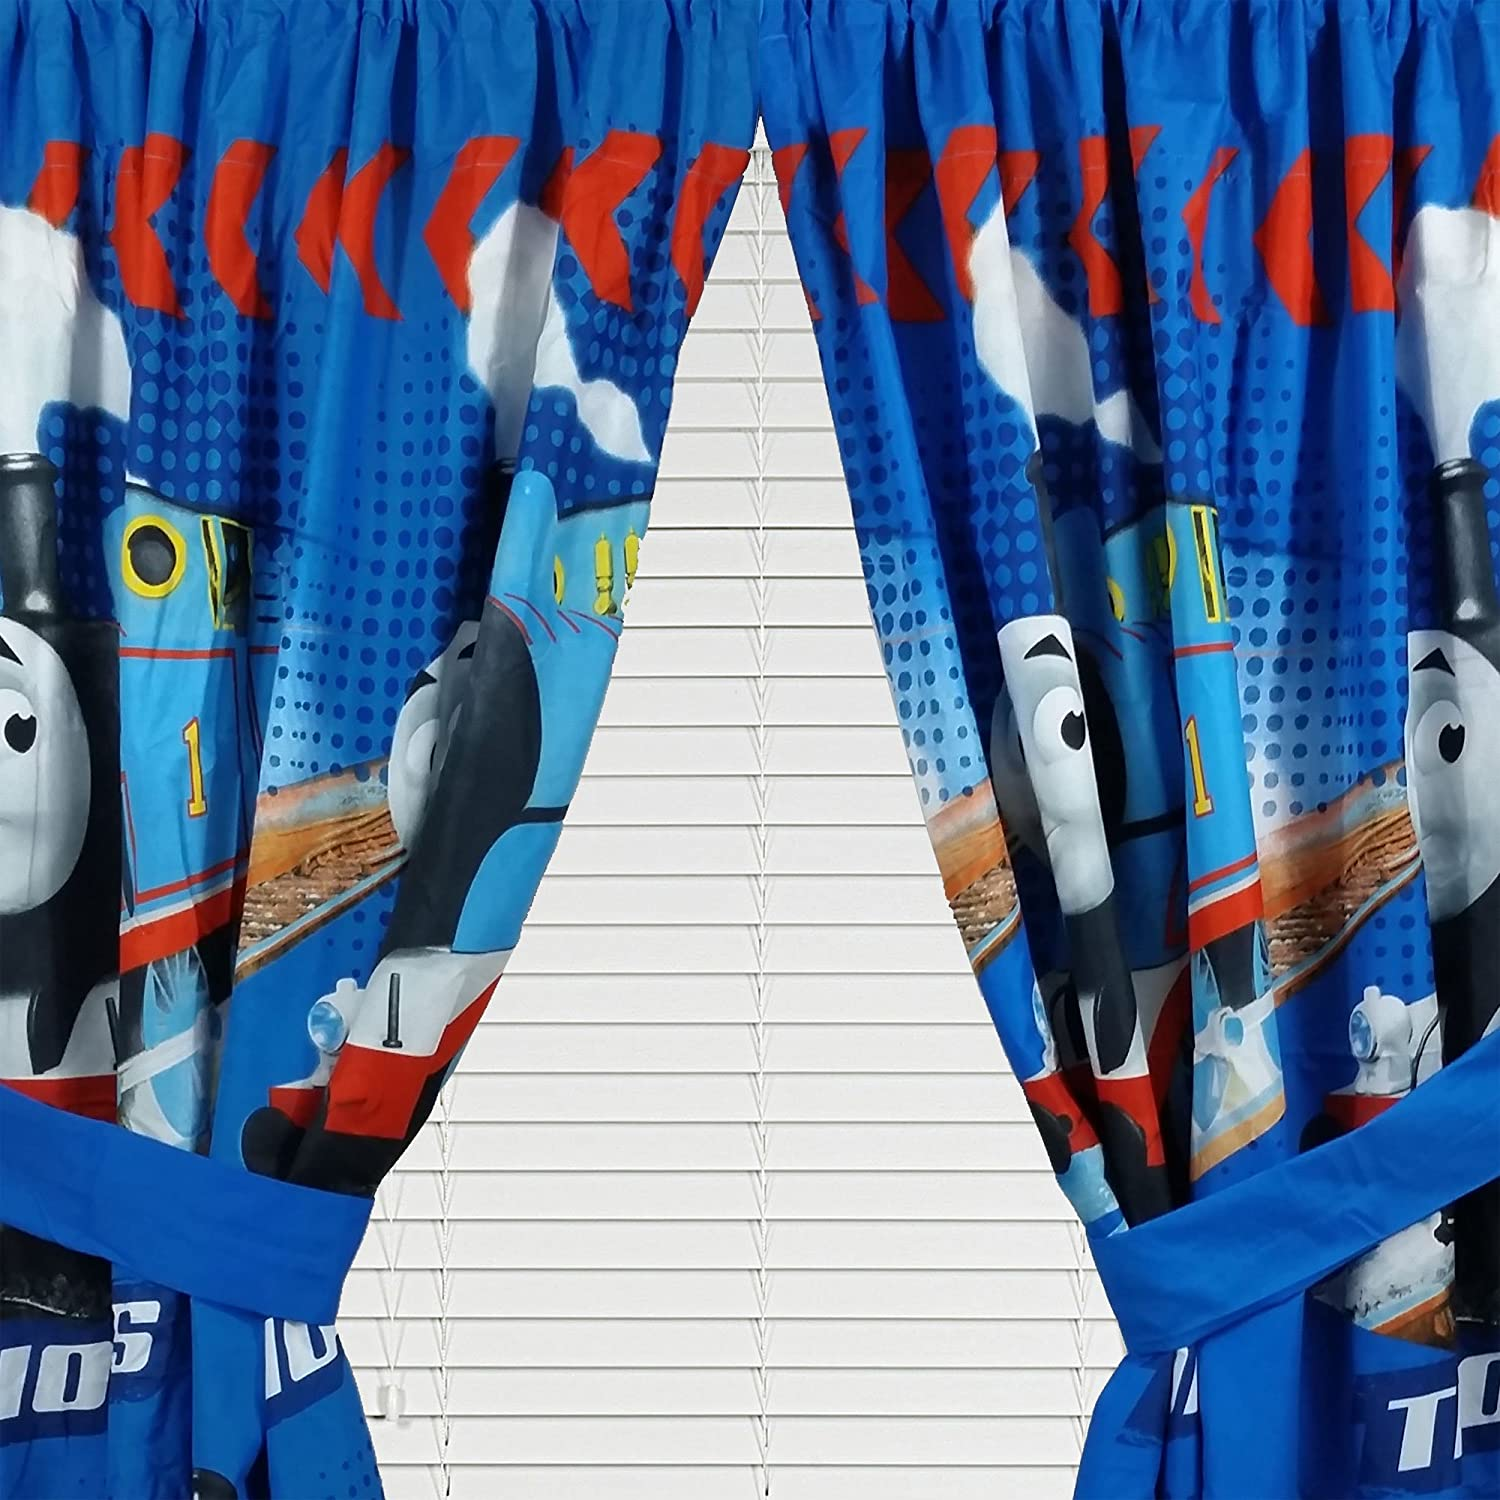 Gullane Thomas The Train Engine Friends Drapery Drapes Curtain Panels Amazoncouk Kitchen Home